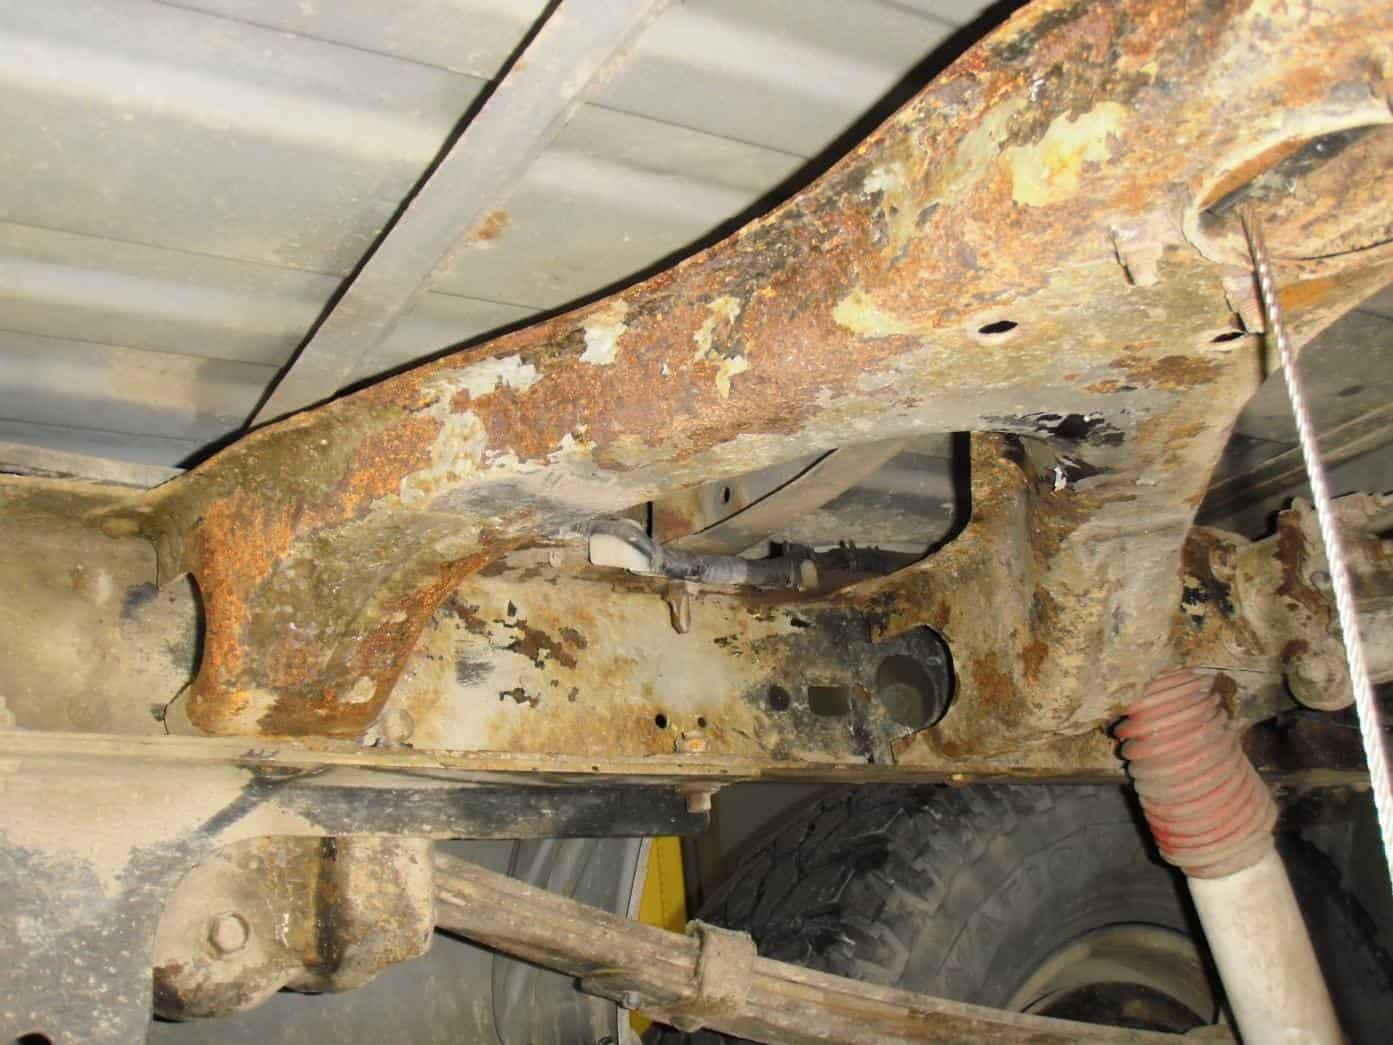 Toyota Tundra Recalled for Frame Rust | NH Oil Undercoating